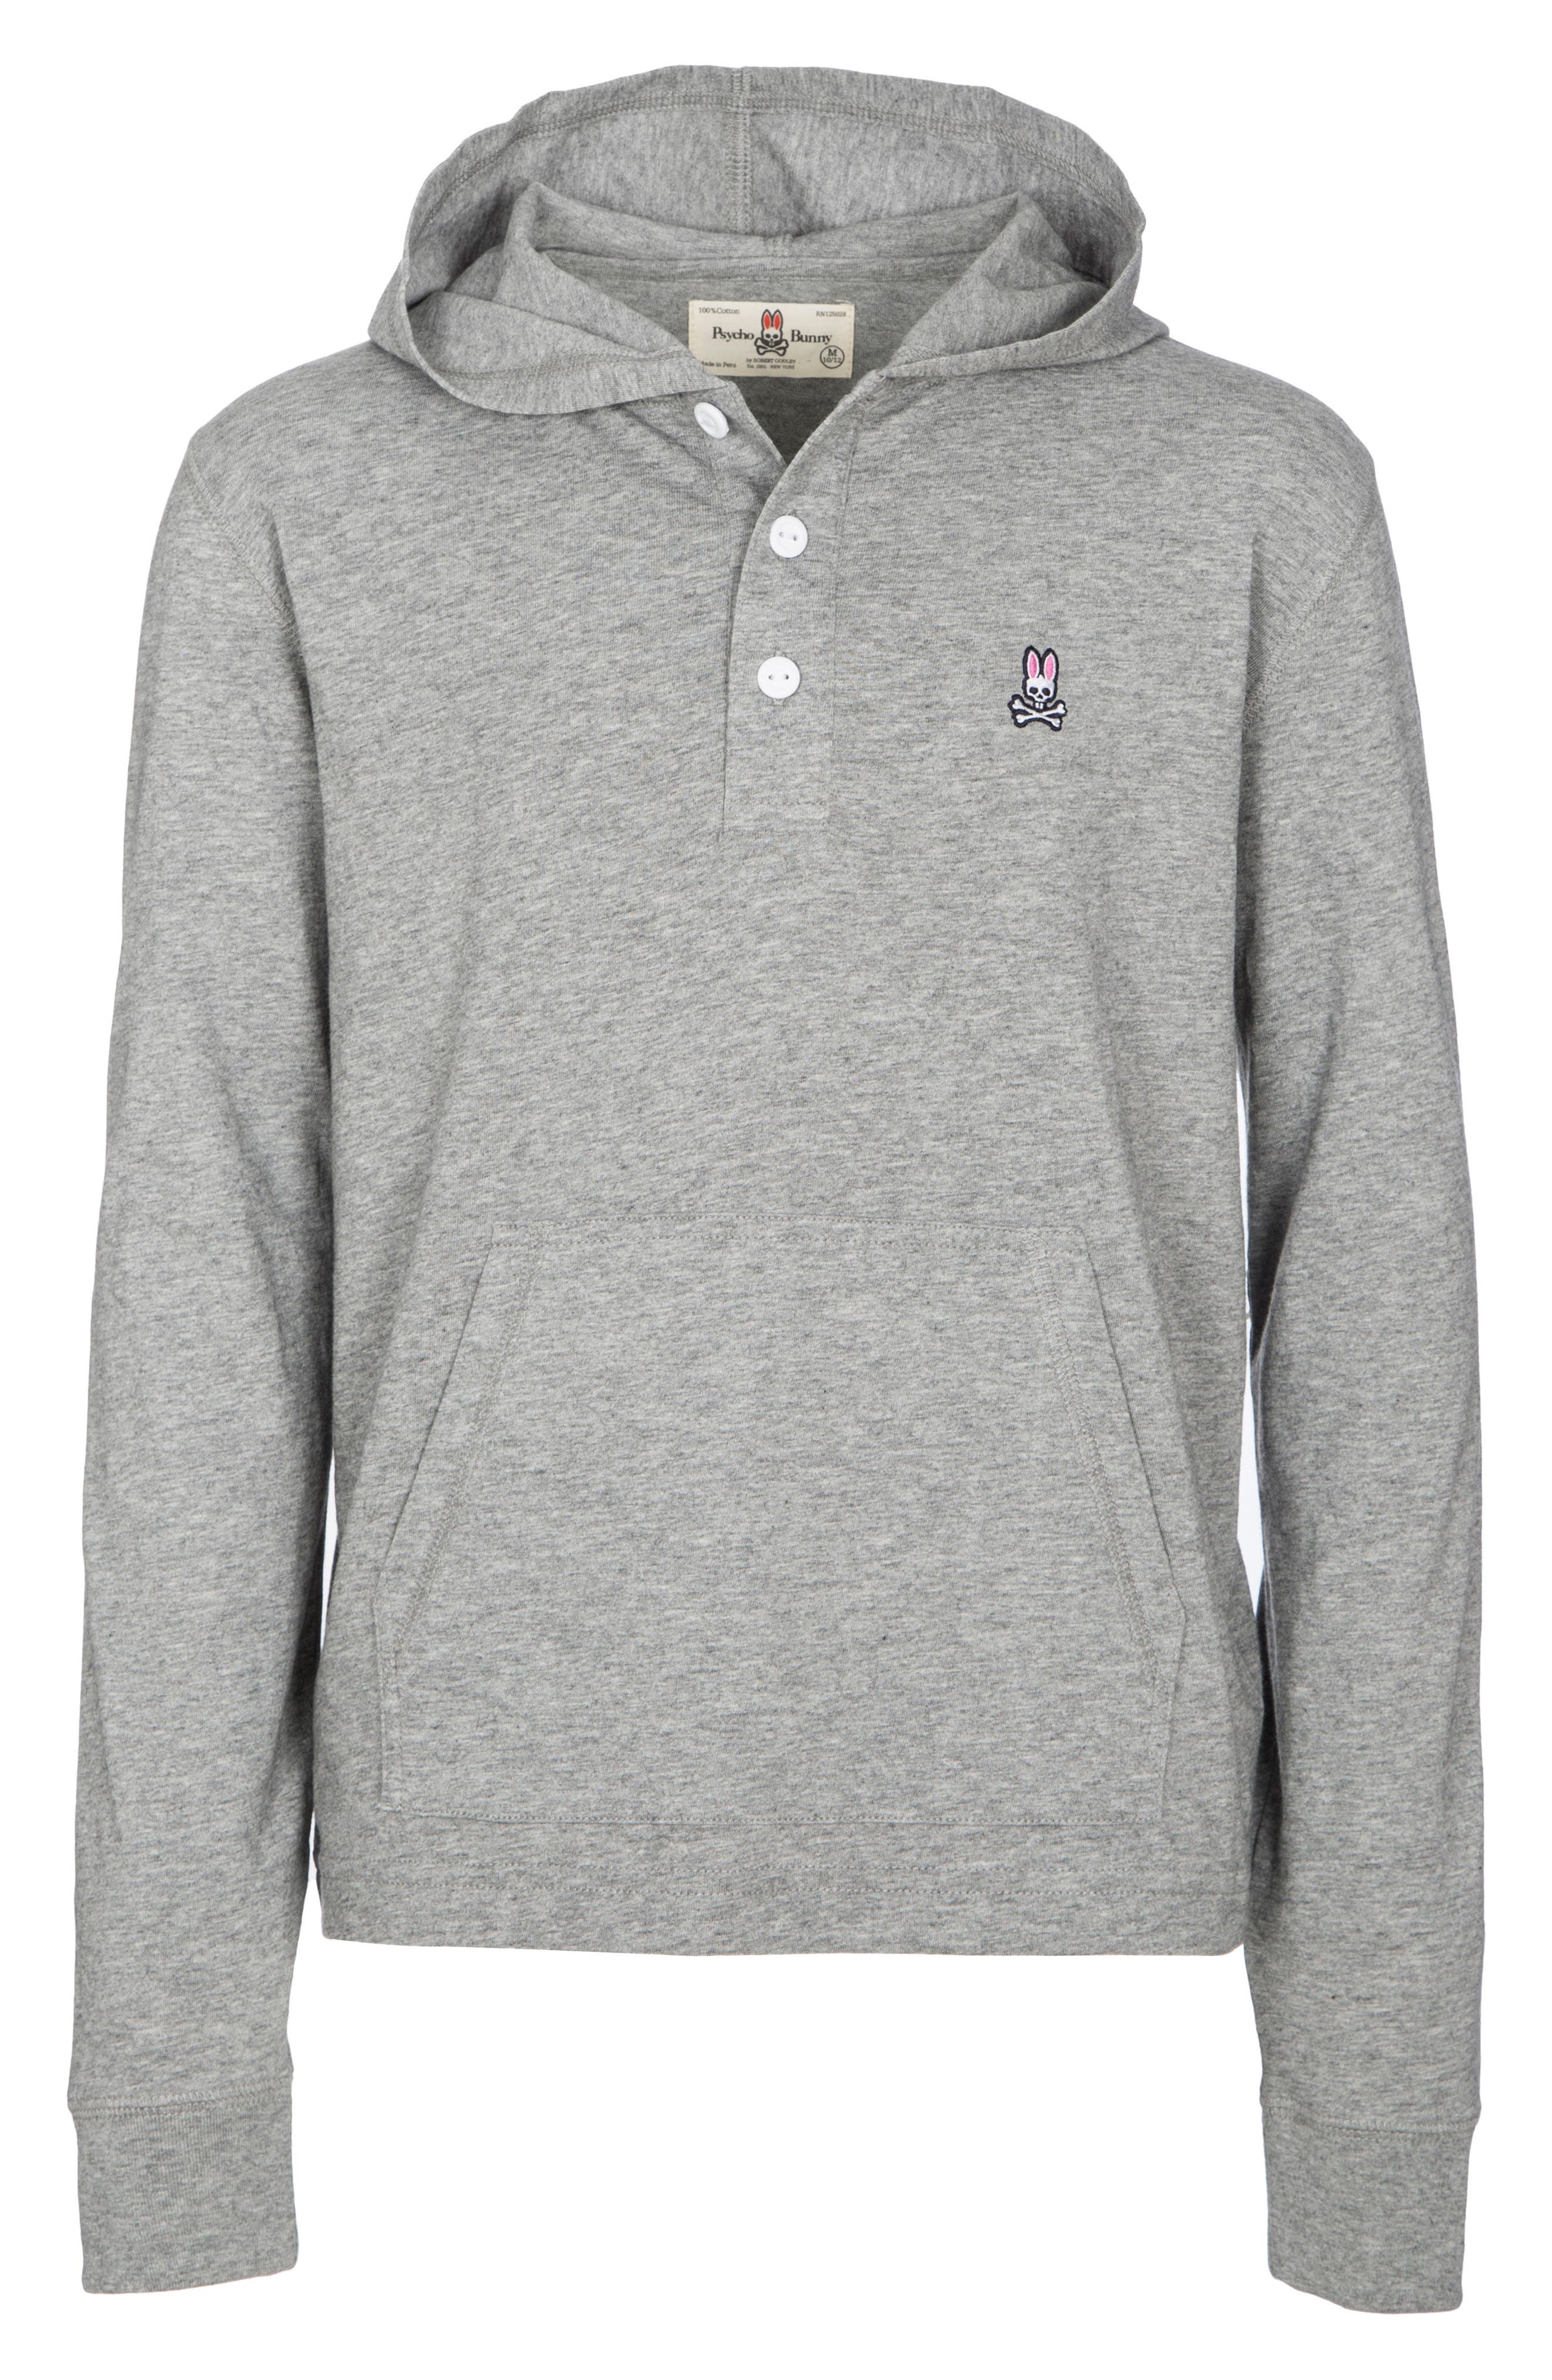 Delano Henley Pullover Hoodie,                             Main thumbnail 1, color,                             HEATHER GREY